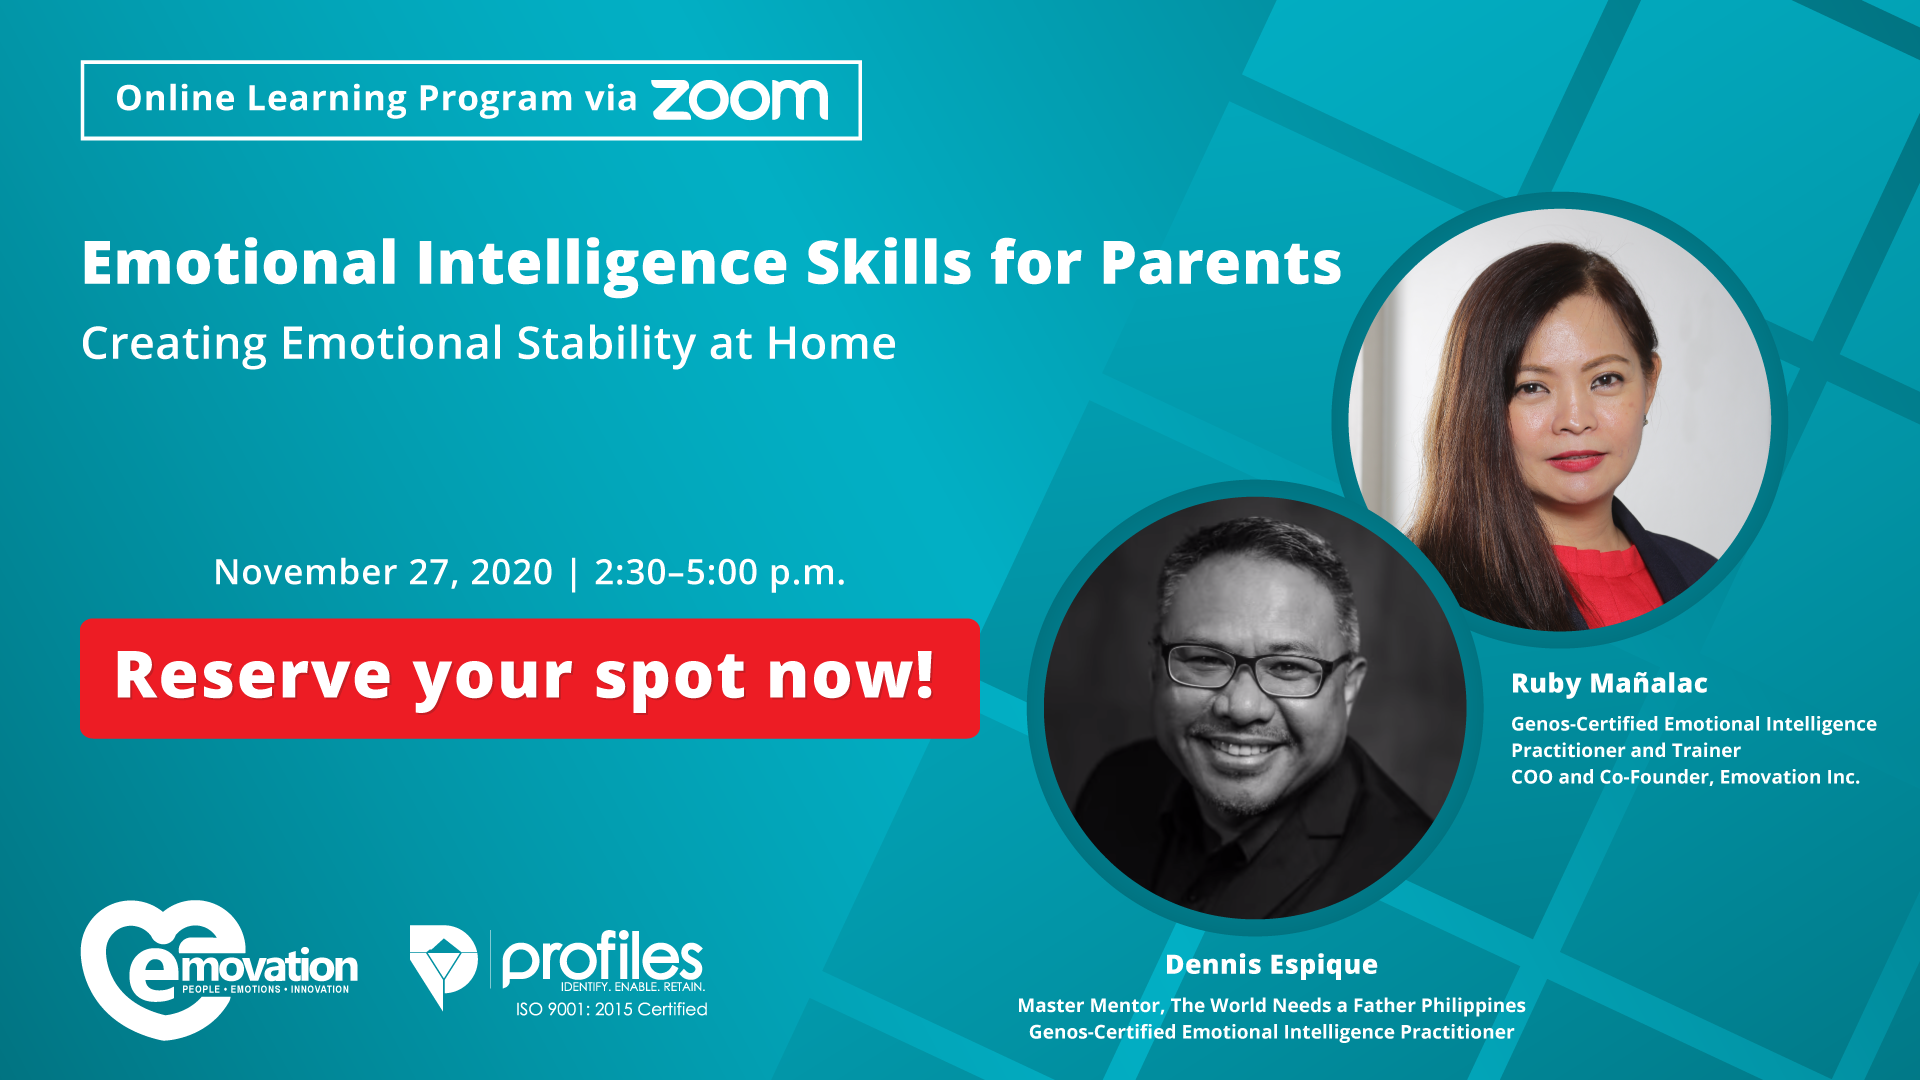 Emotional Intelligence Skills for Parents: Creating Emotional Stability at Home